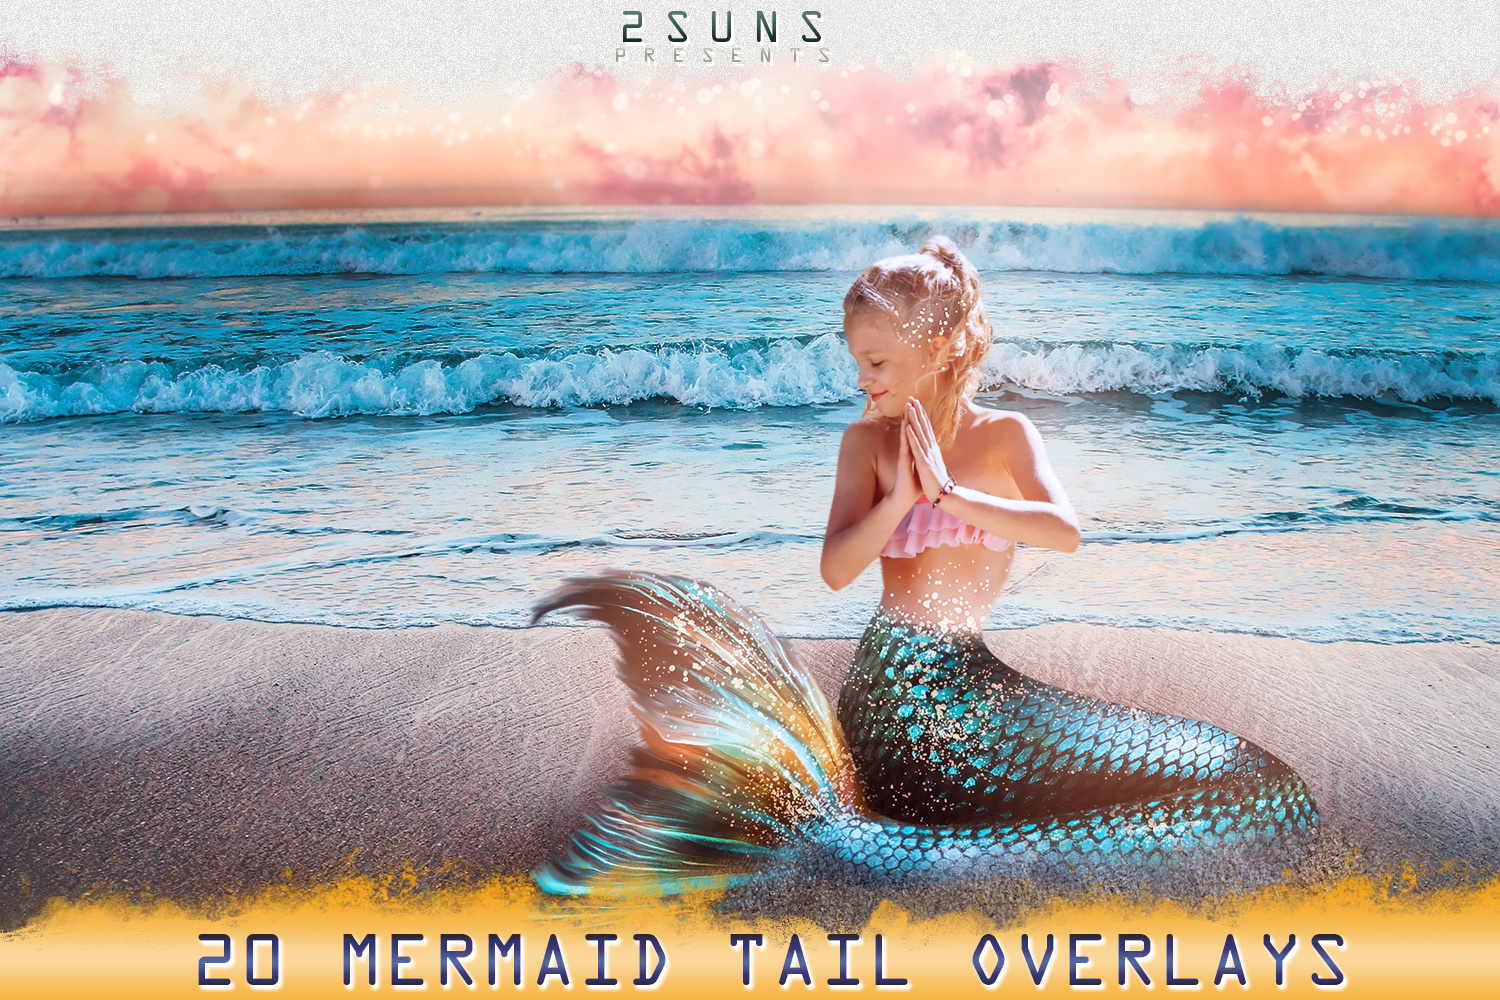 Mermaid tail, tails, overlays, Clipart, PNG, example image 1